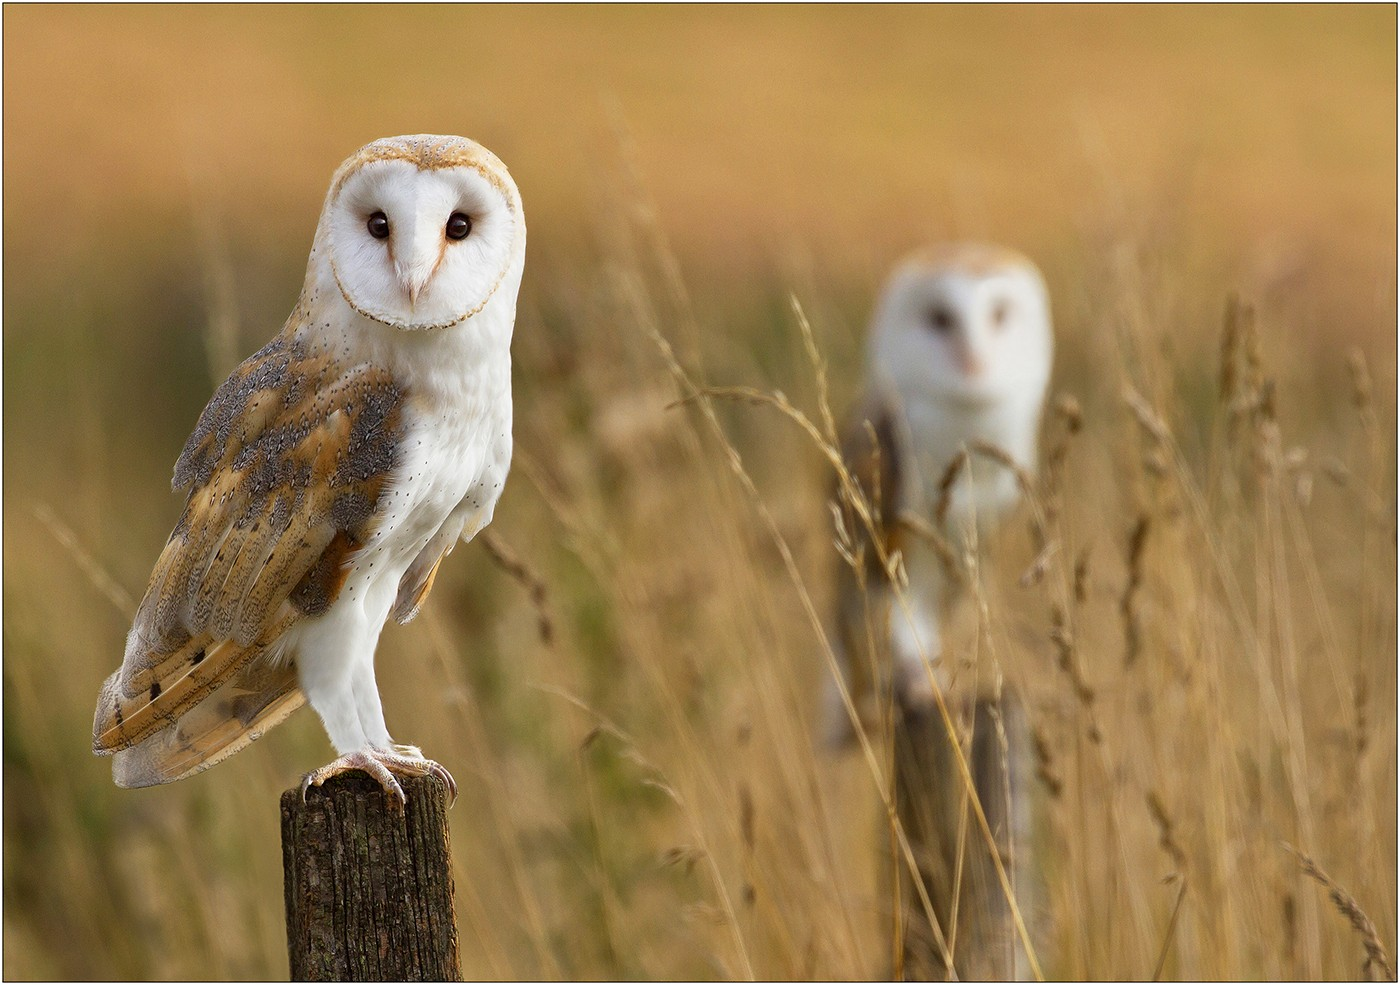 Barn Owls in the Hedgerow